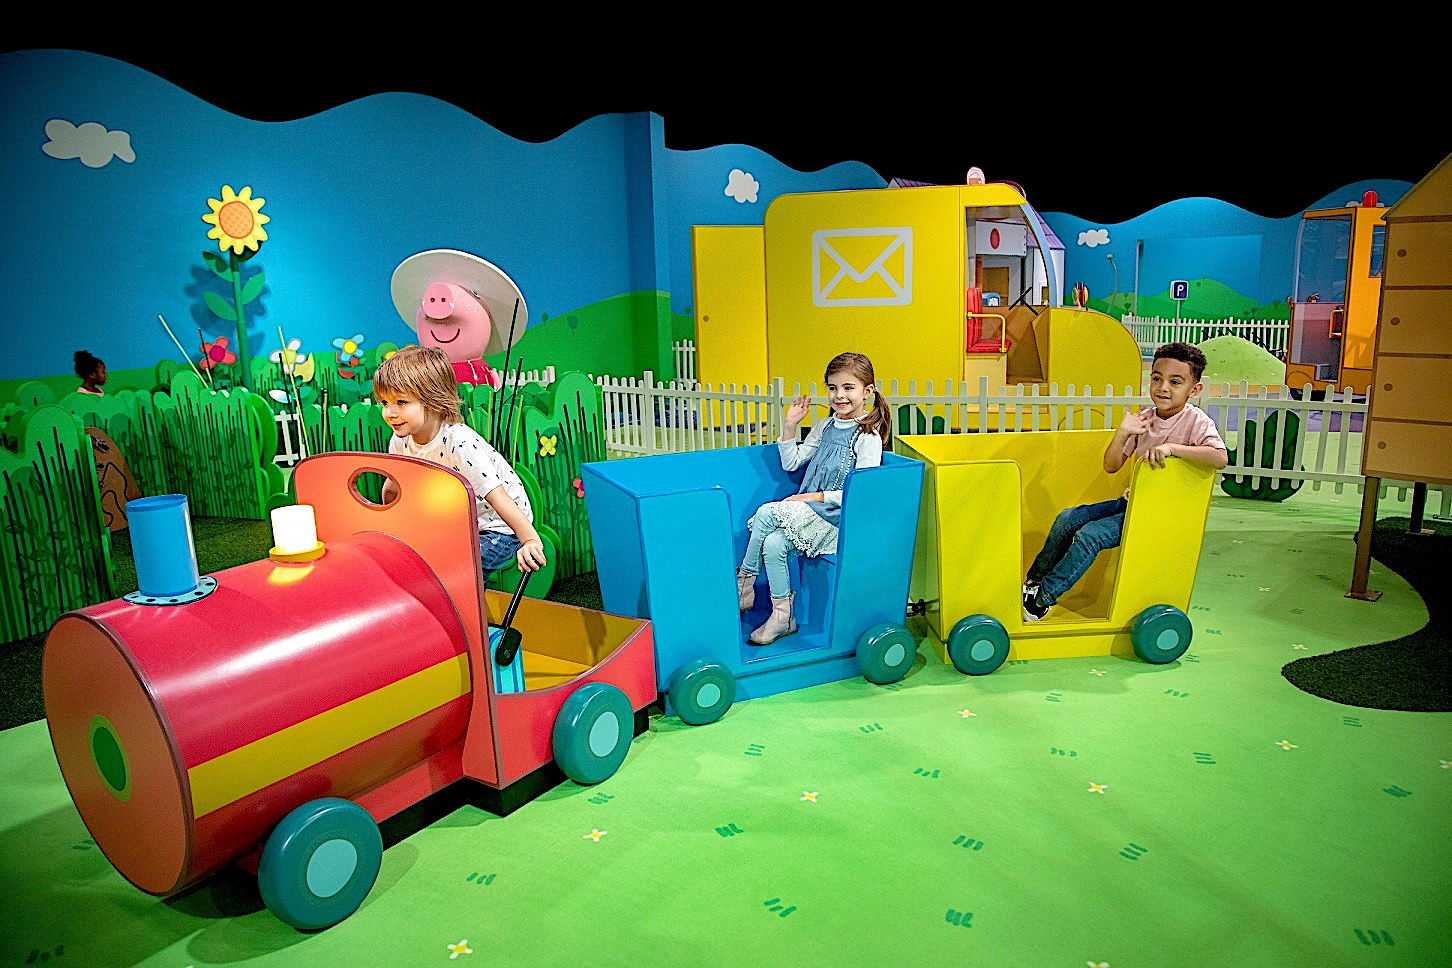 Merlin Entertainments Launches First Us Peppa Pig World Of Play Park World Online Theme Park Amusement Park And Attractions Industry News